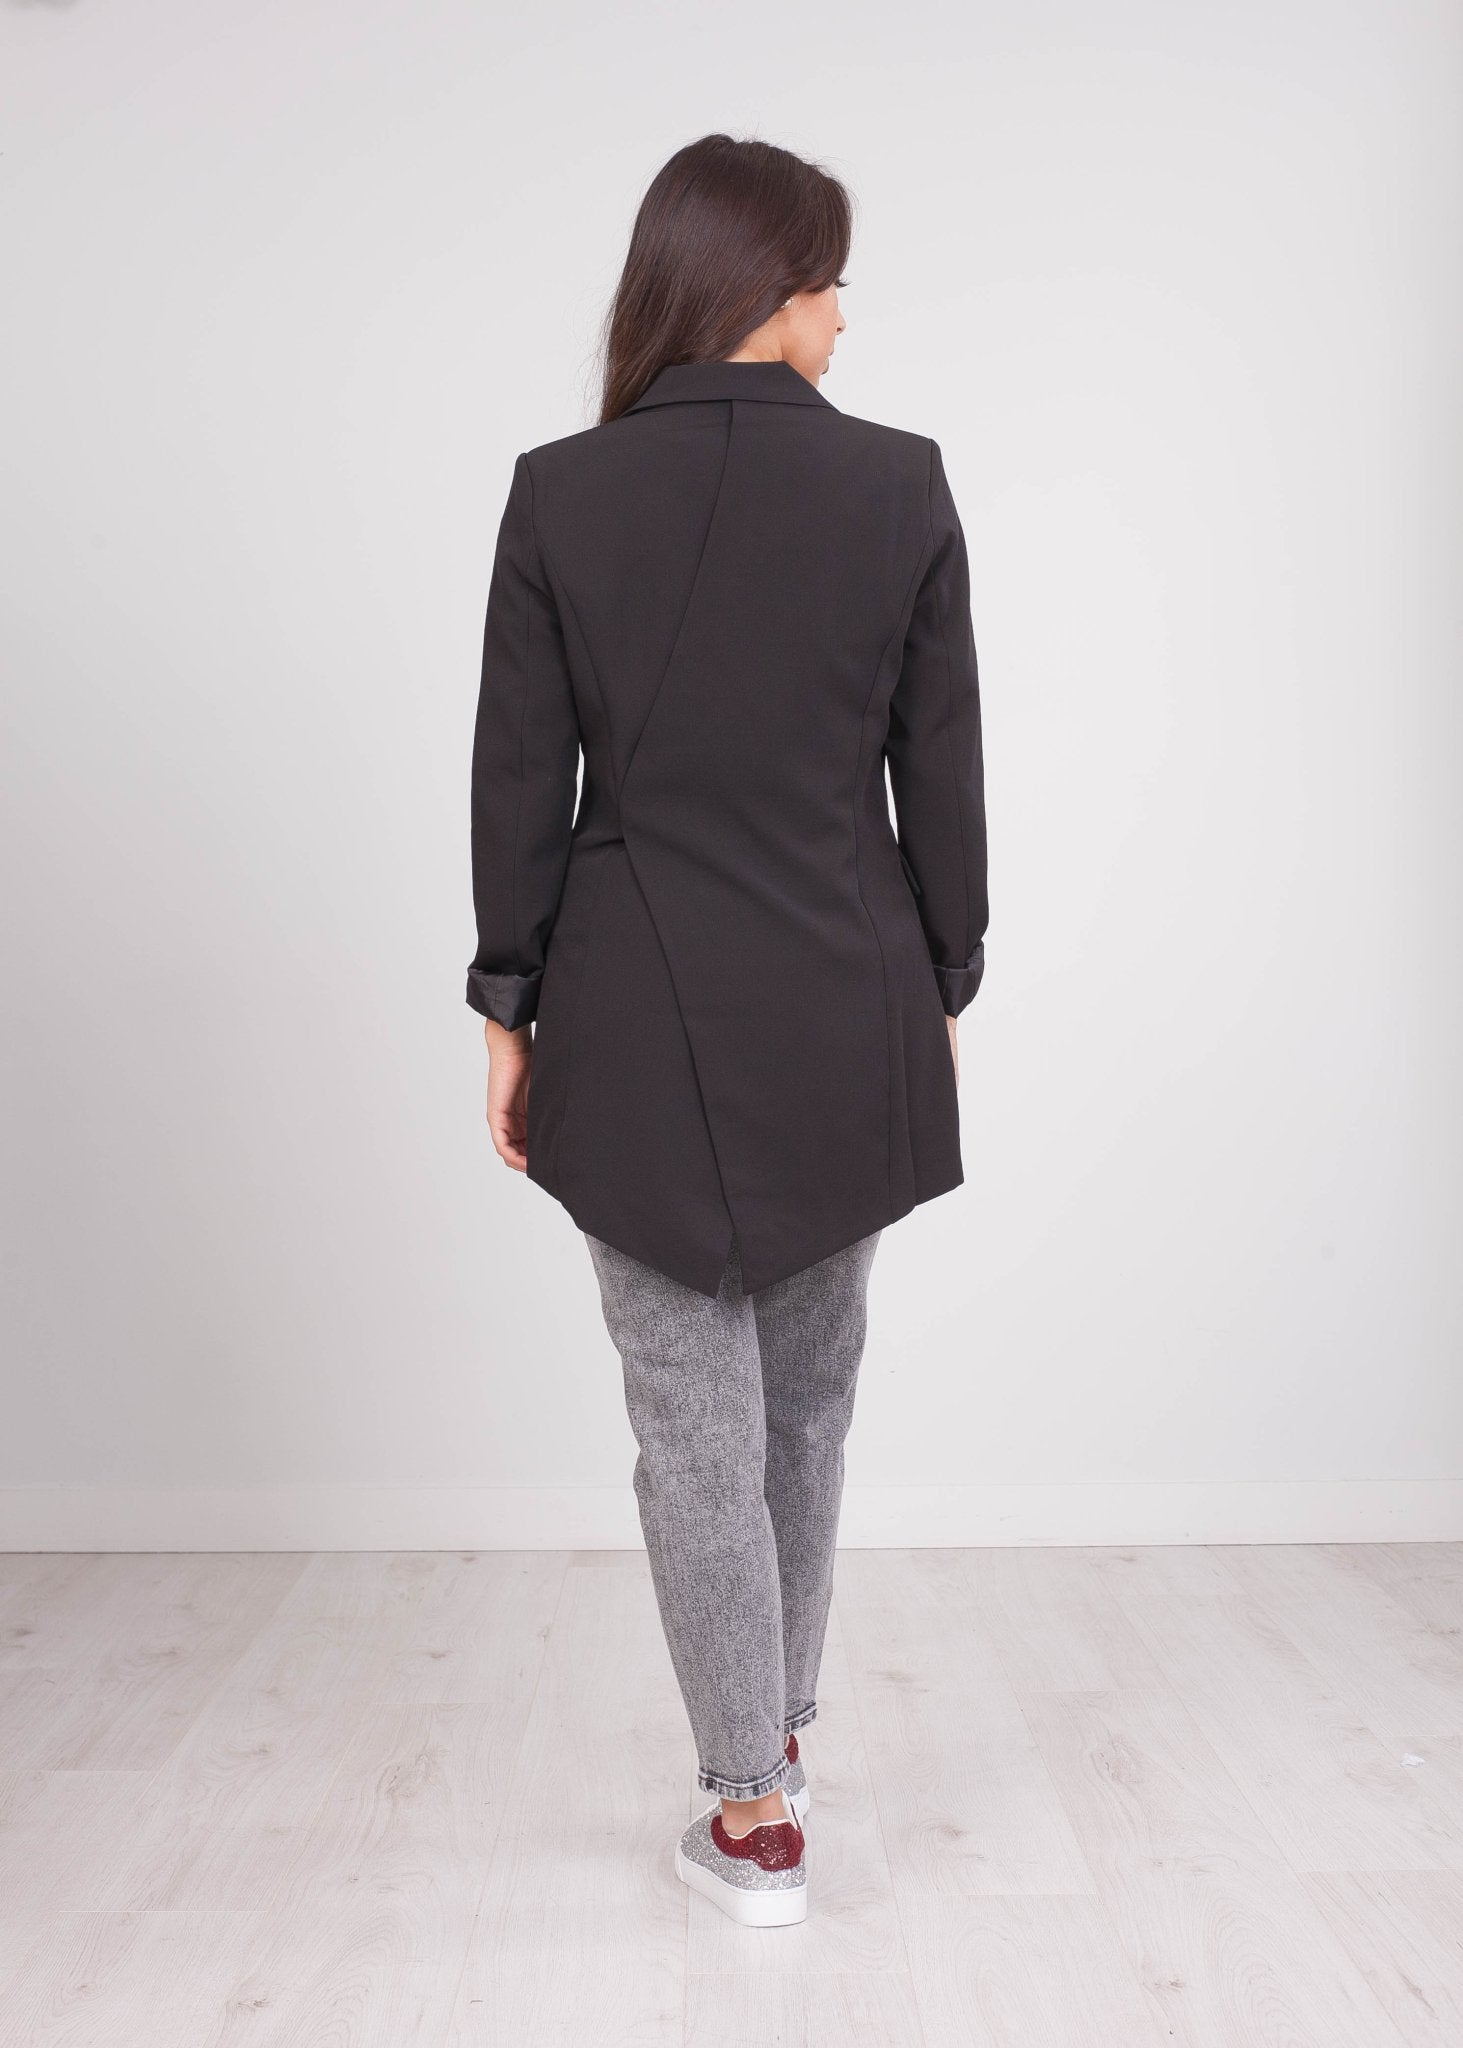 Arabella Black Asymmetric Blazer - The Walk in Wardrobe